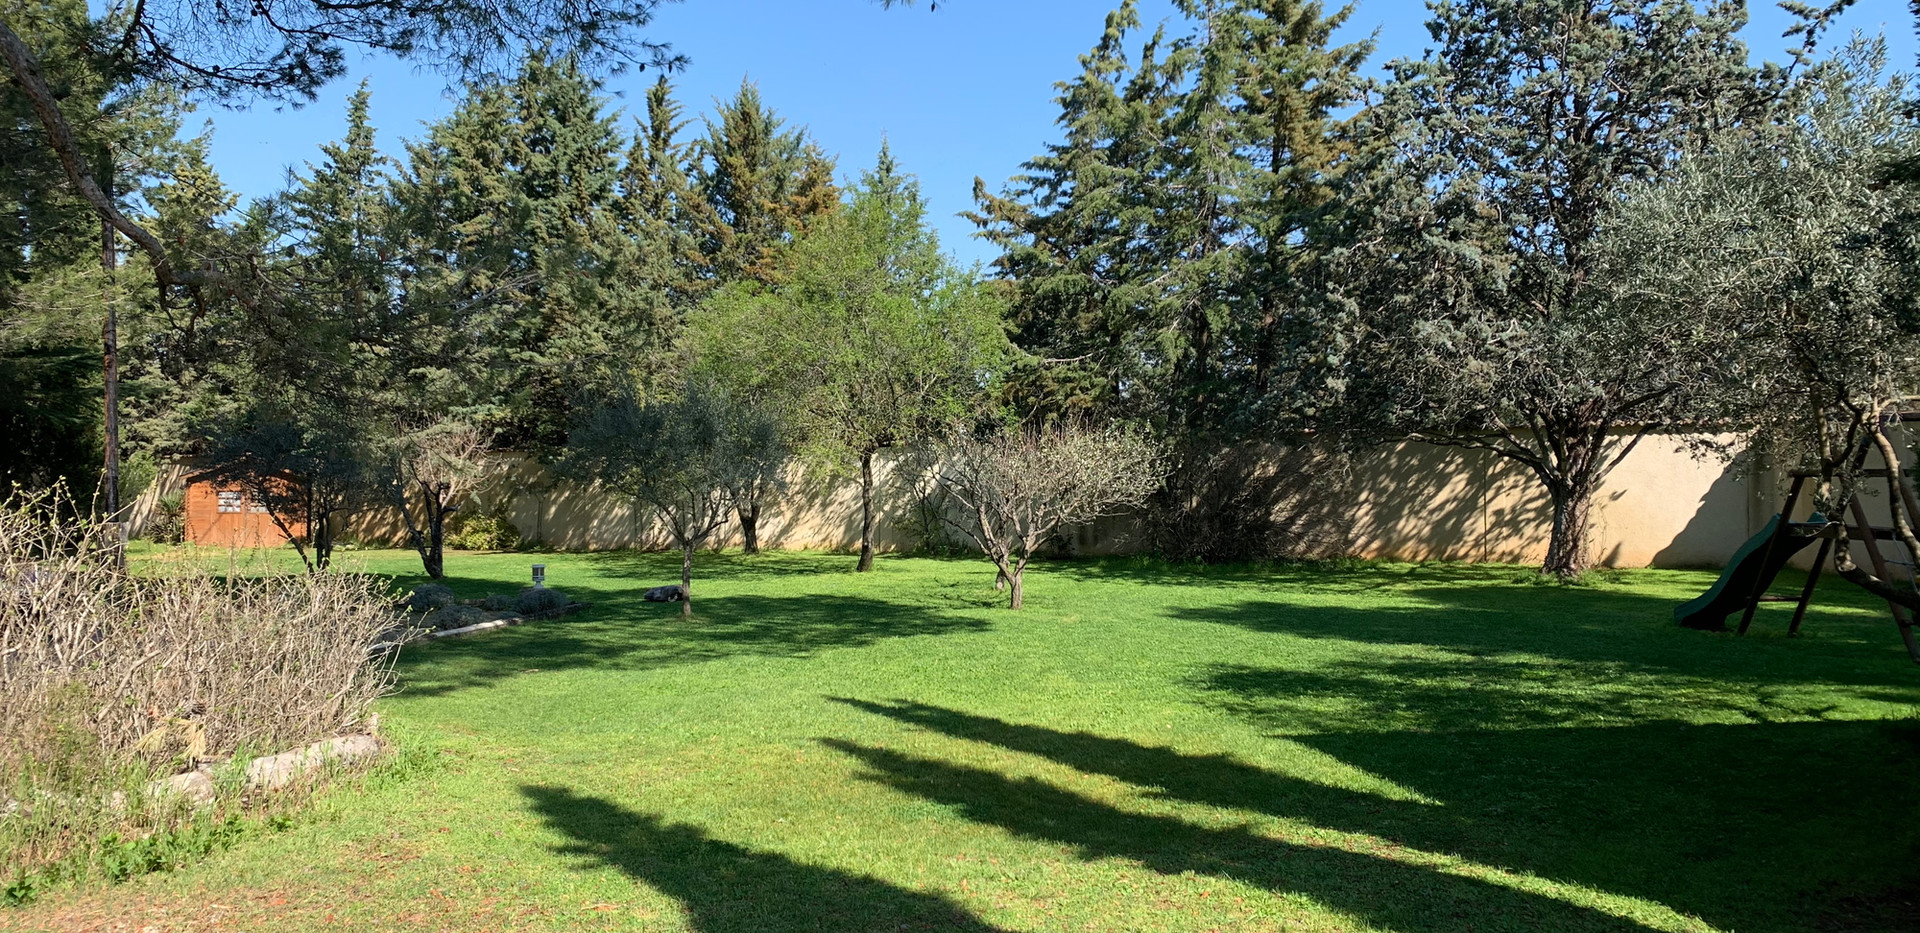 The gardens of Mas Saint-Gens, cottage to rent in Provence